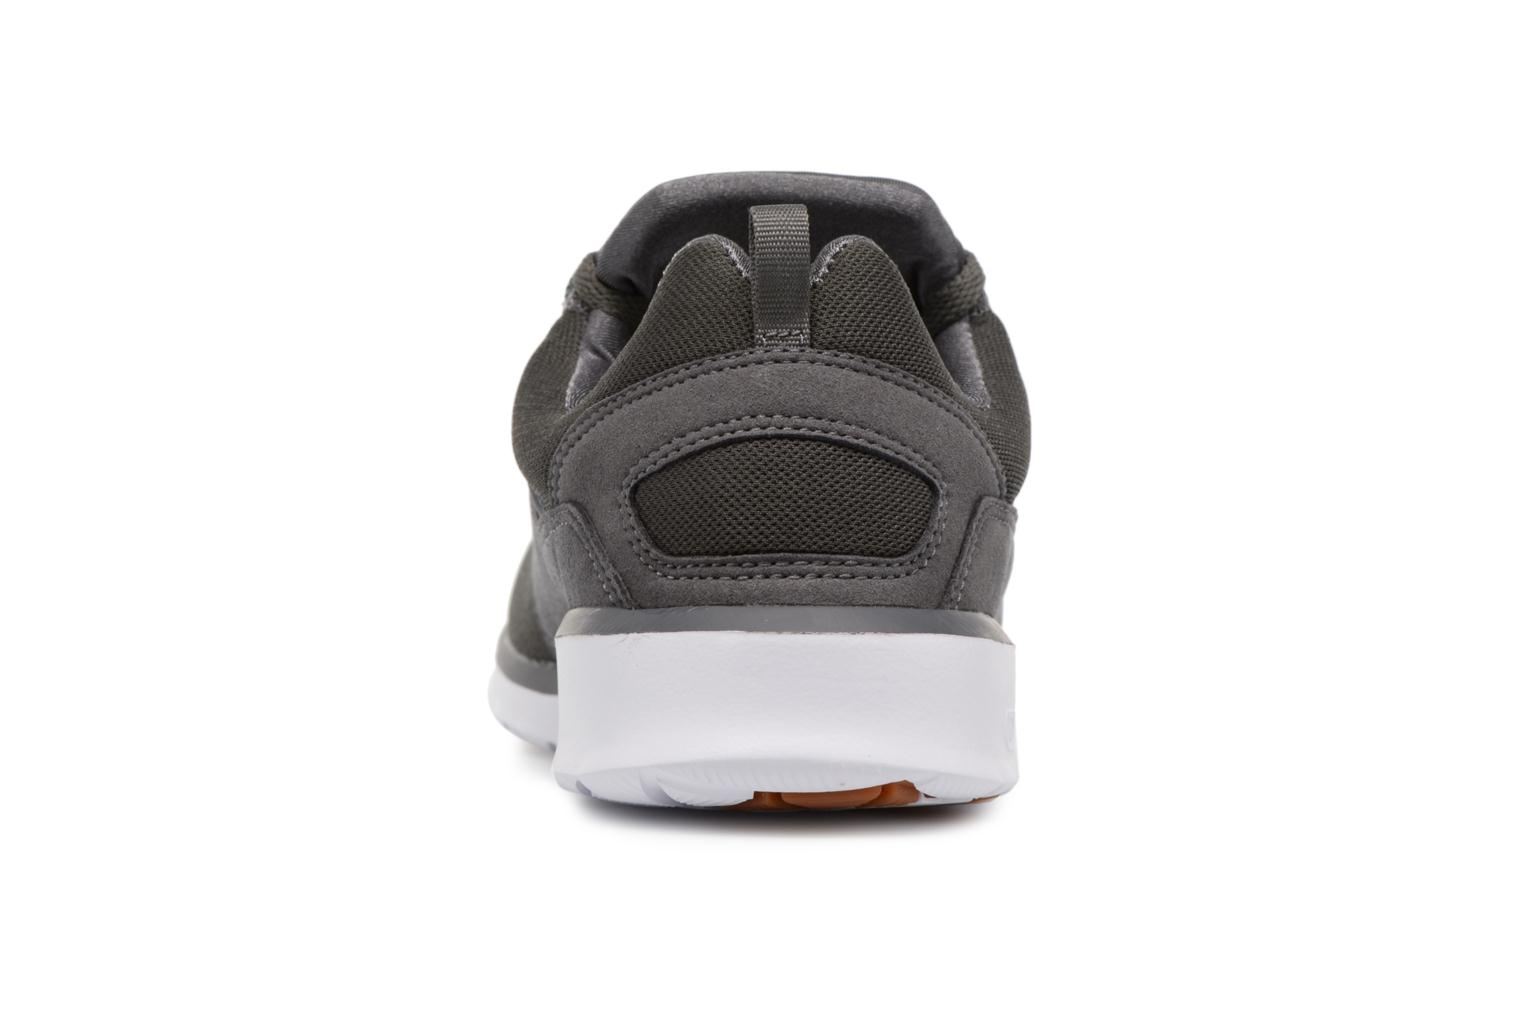 Pewter Heathrow Dc Dc Heathrow Shoes Dc Shoes Pewter Shoes Pewter Heathrow ARLqcS354j